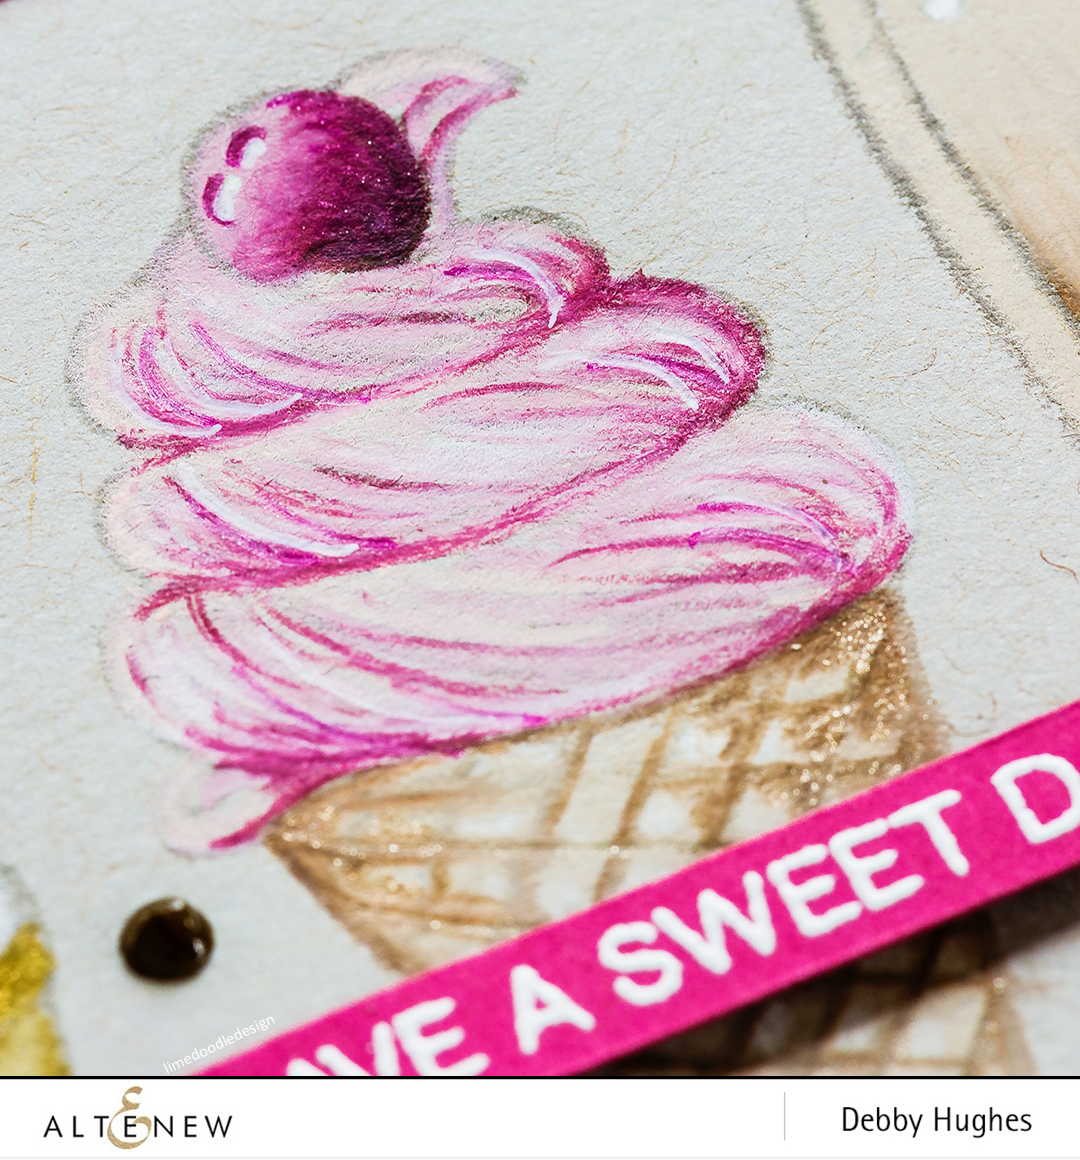 Pencil colouring on kraft with Debby Hughes. Find out more here: http://altenewblog.com/2017/08/16/pencil-colouring-on-kraft-with-debby-hughes/